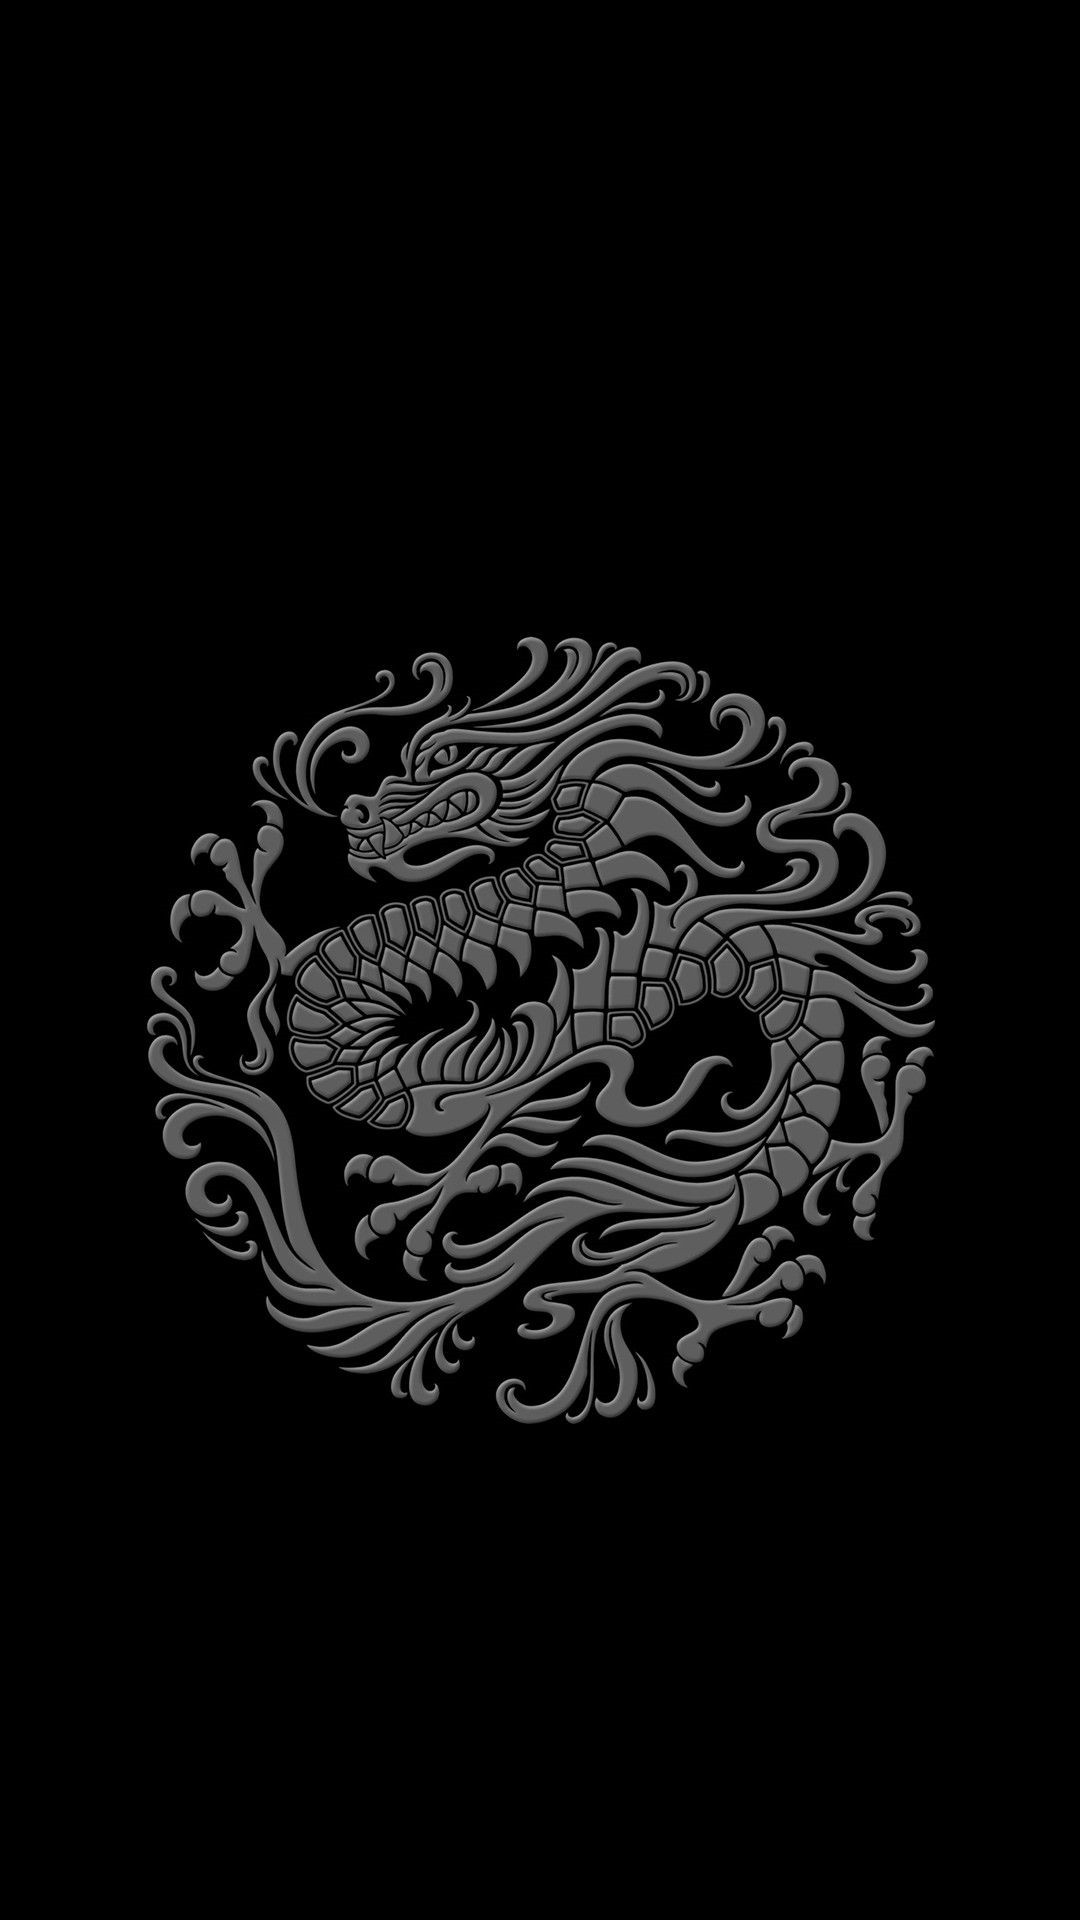 Dragon phone wallpaper hd